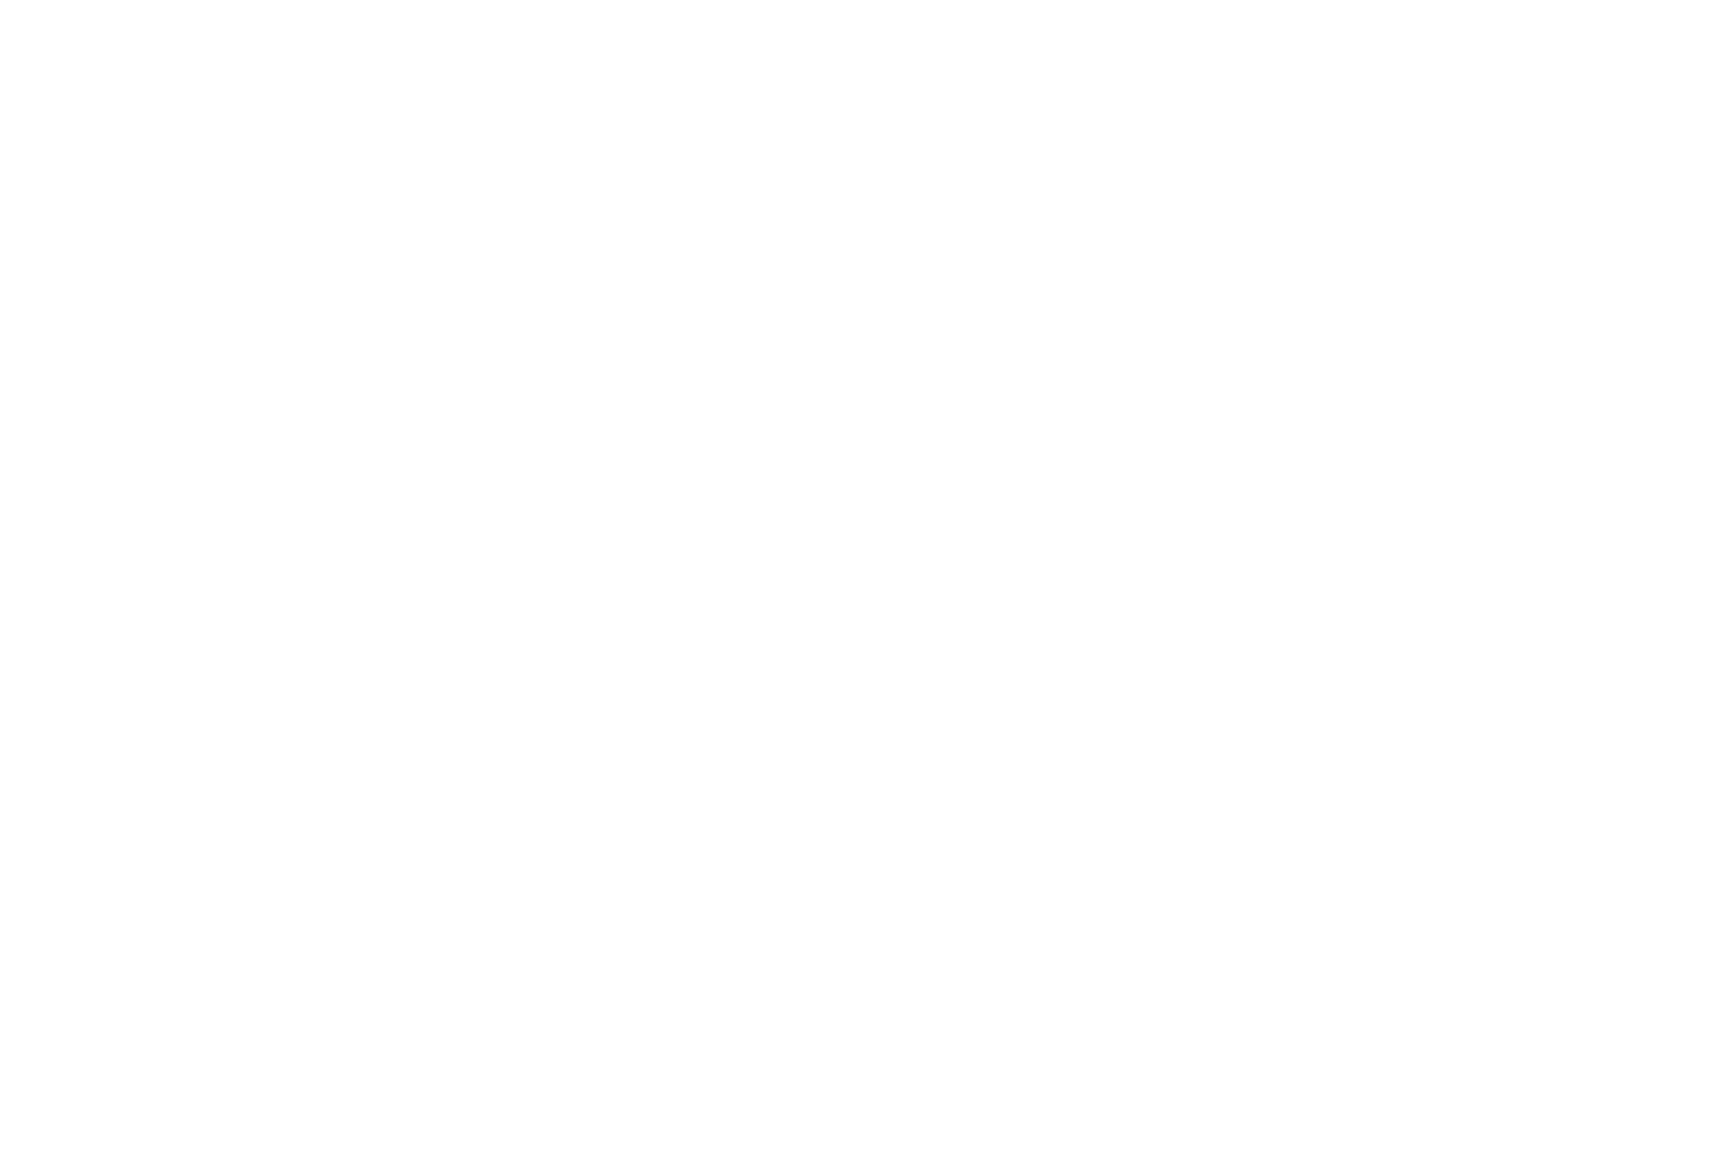 OFFICIAL SELECTION - Short Cine Fest - 2019 (1).png